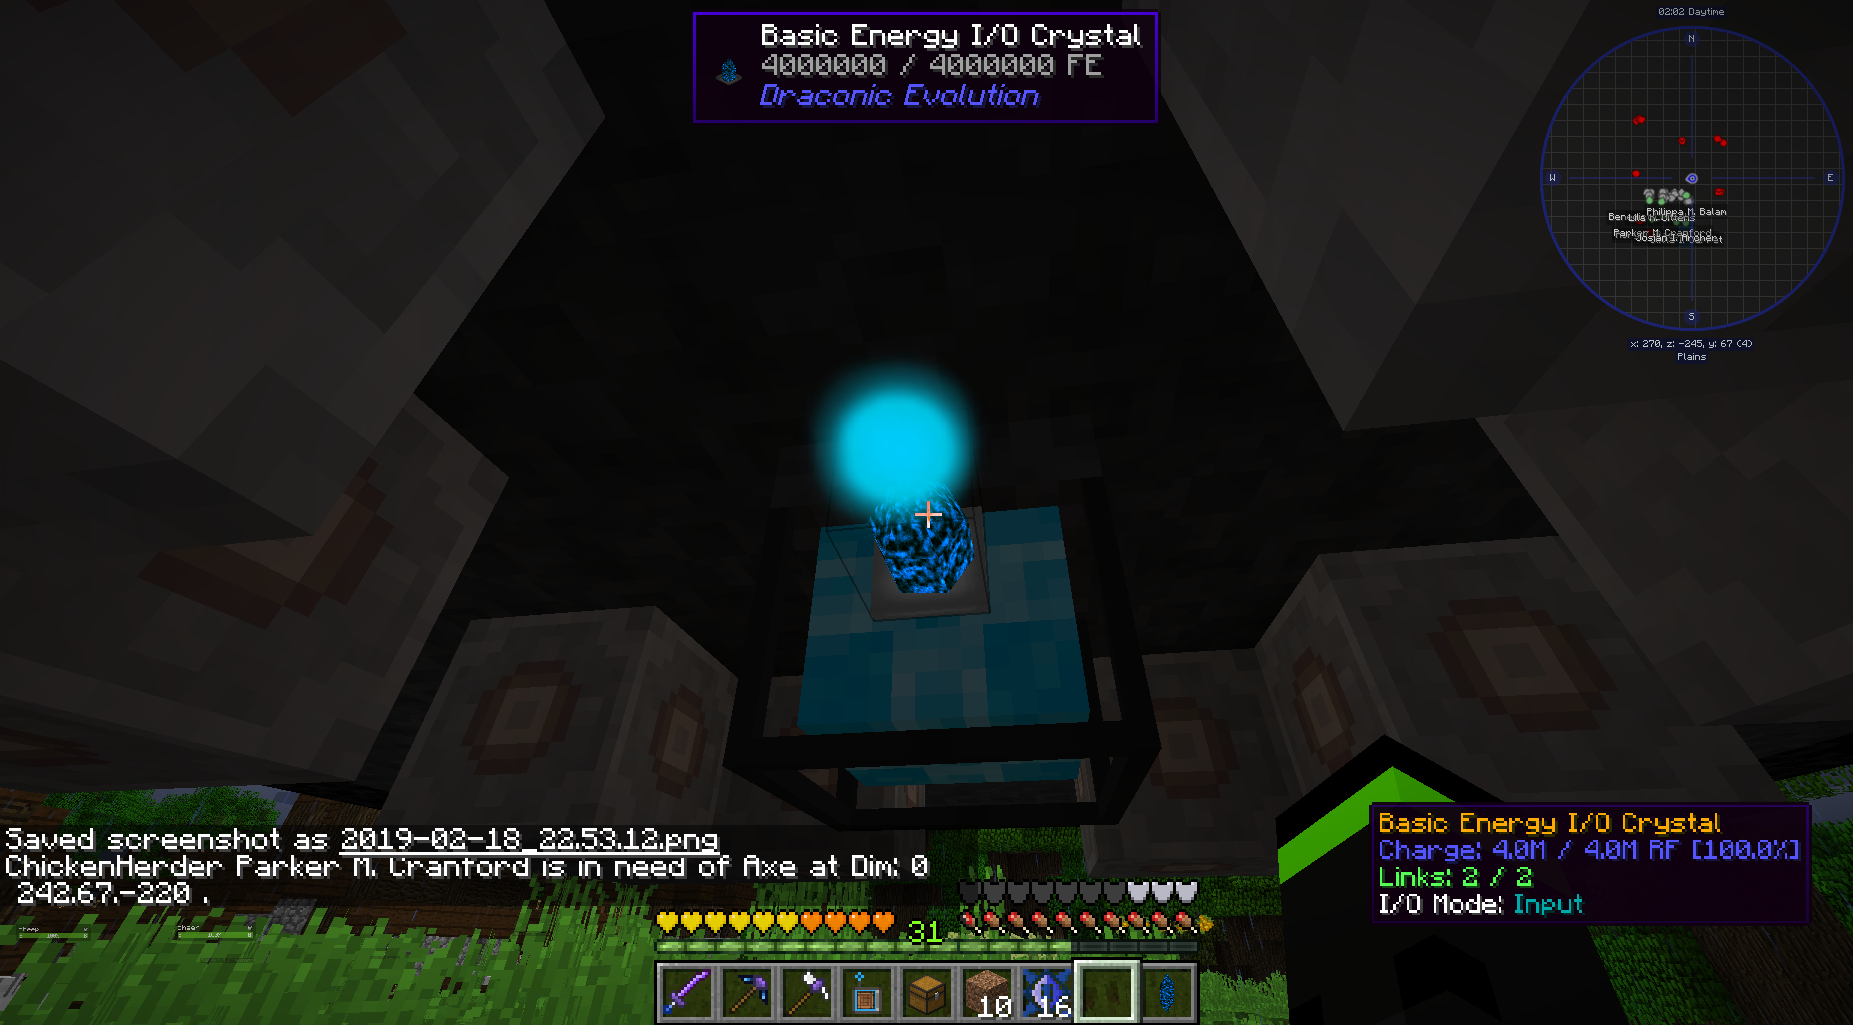 Draconic Evolution Fusion Crafting not working? · Issue #347